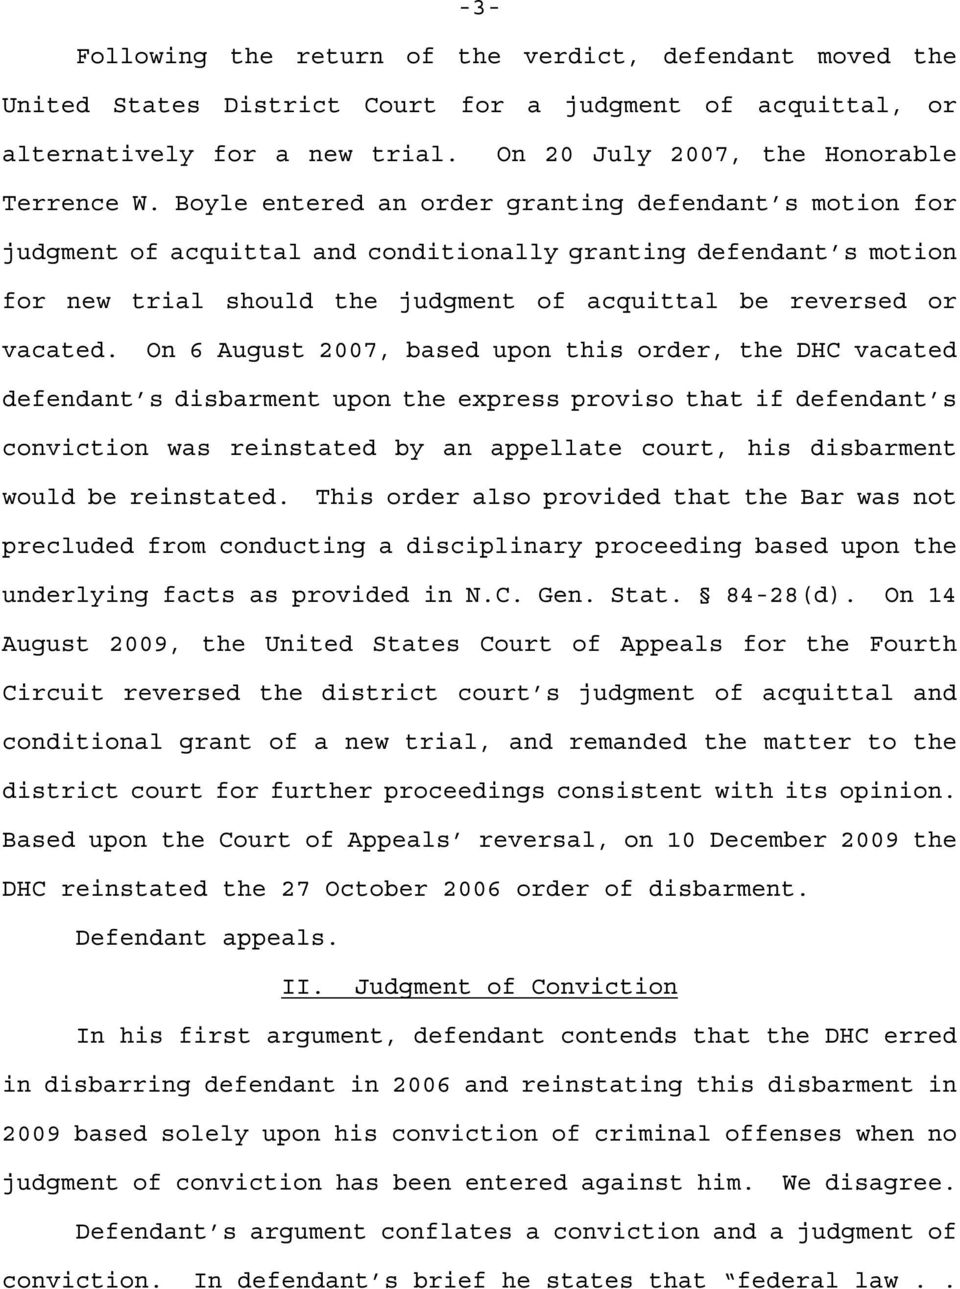 On 6 August 2007, based upon this order, the DHC vacated defendant s disbarment upon the express proviso that if defendant s conviction was reinstated by an appellate court, his disbarment would be